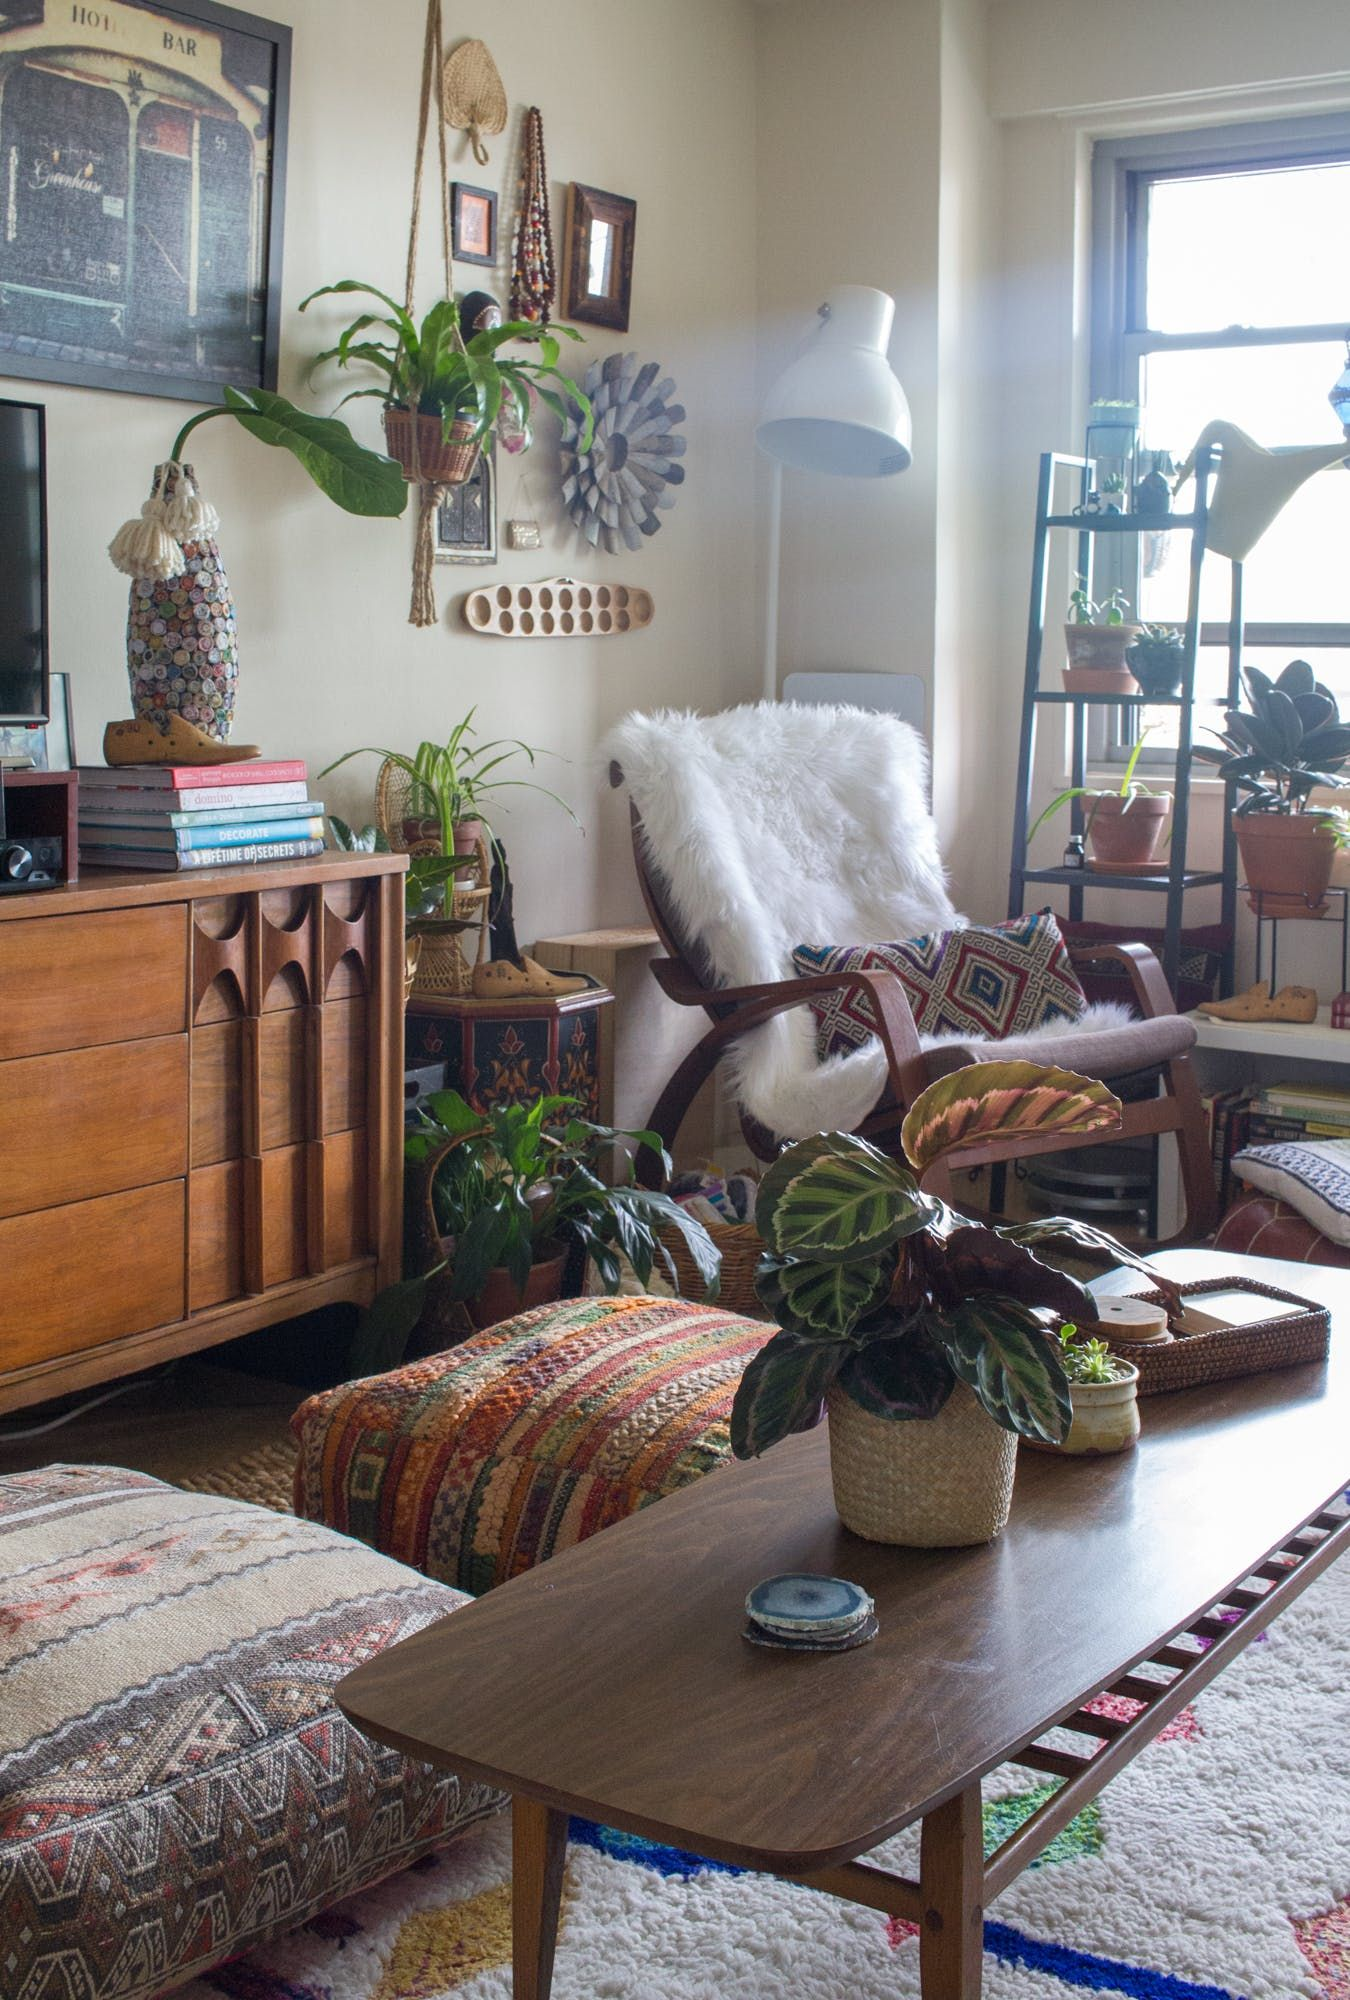 living room poufs%0A The credenza is the Kent Coffey Perspecta Triple Dresser Credenza purchased  from John Ricciardelli at the